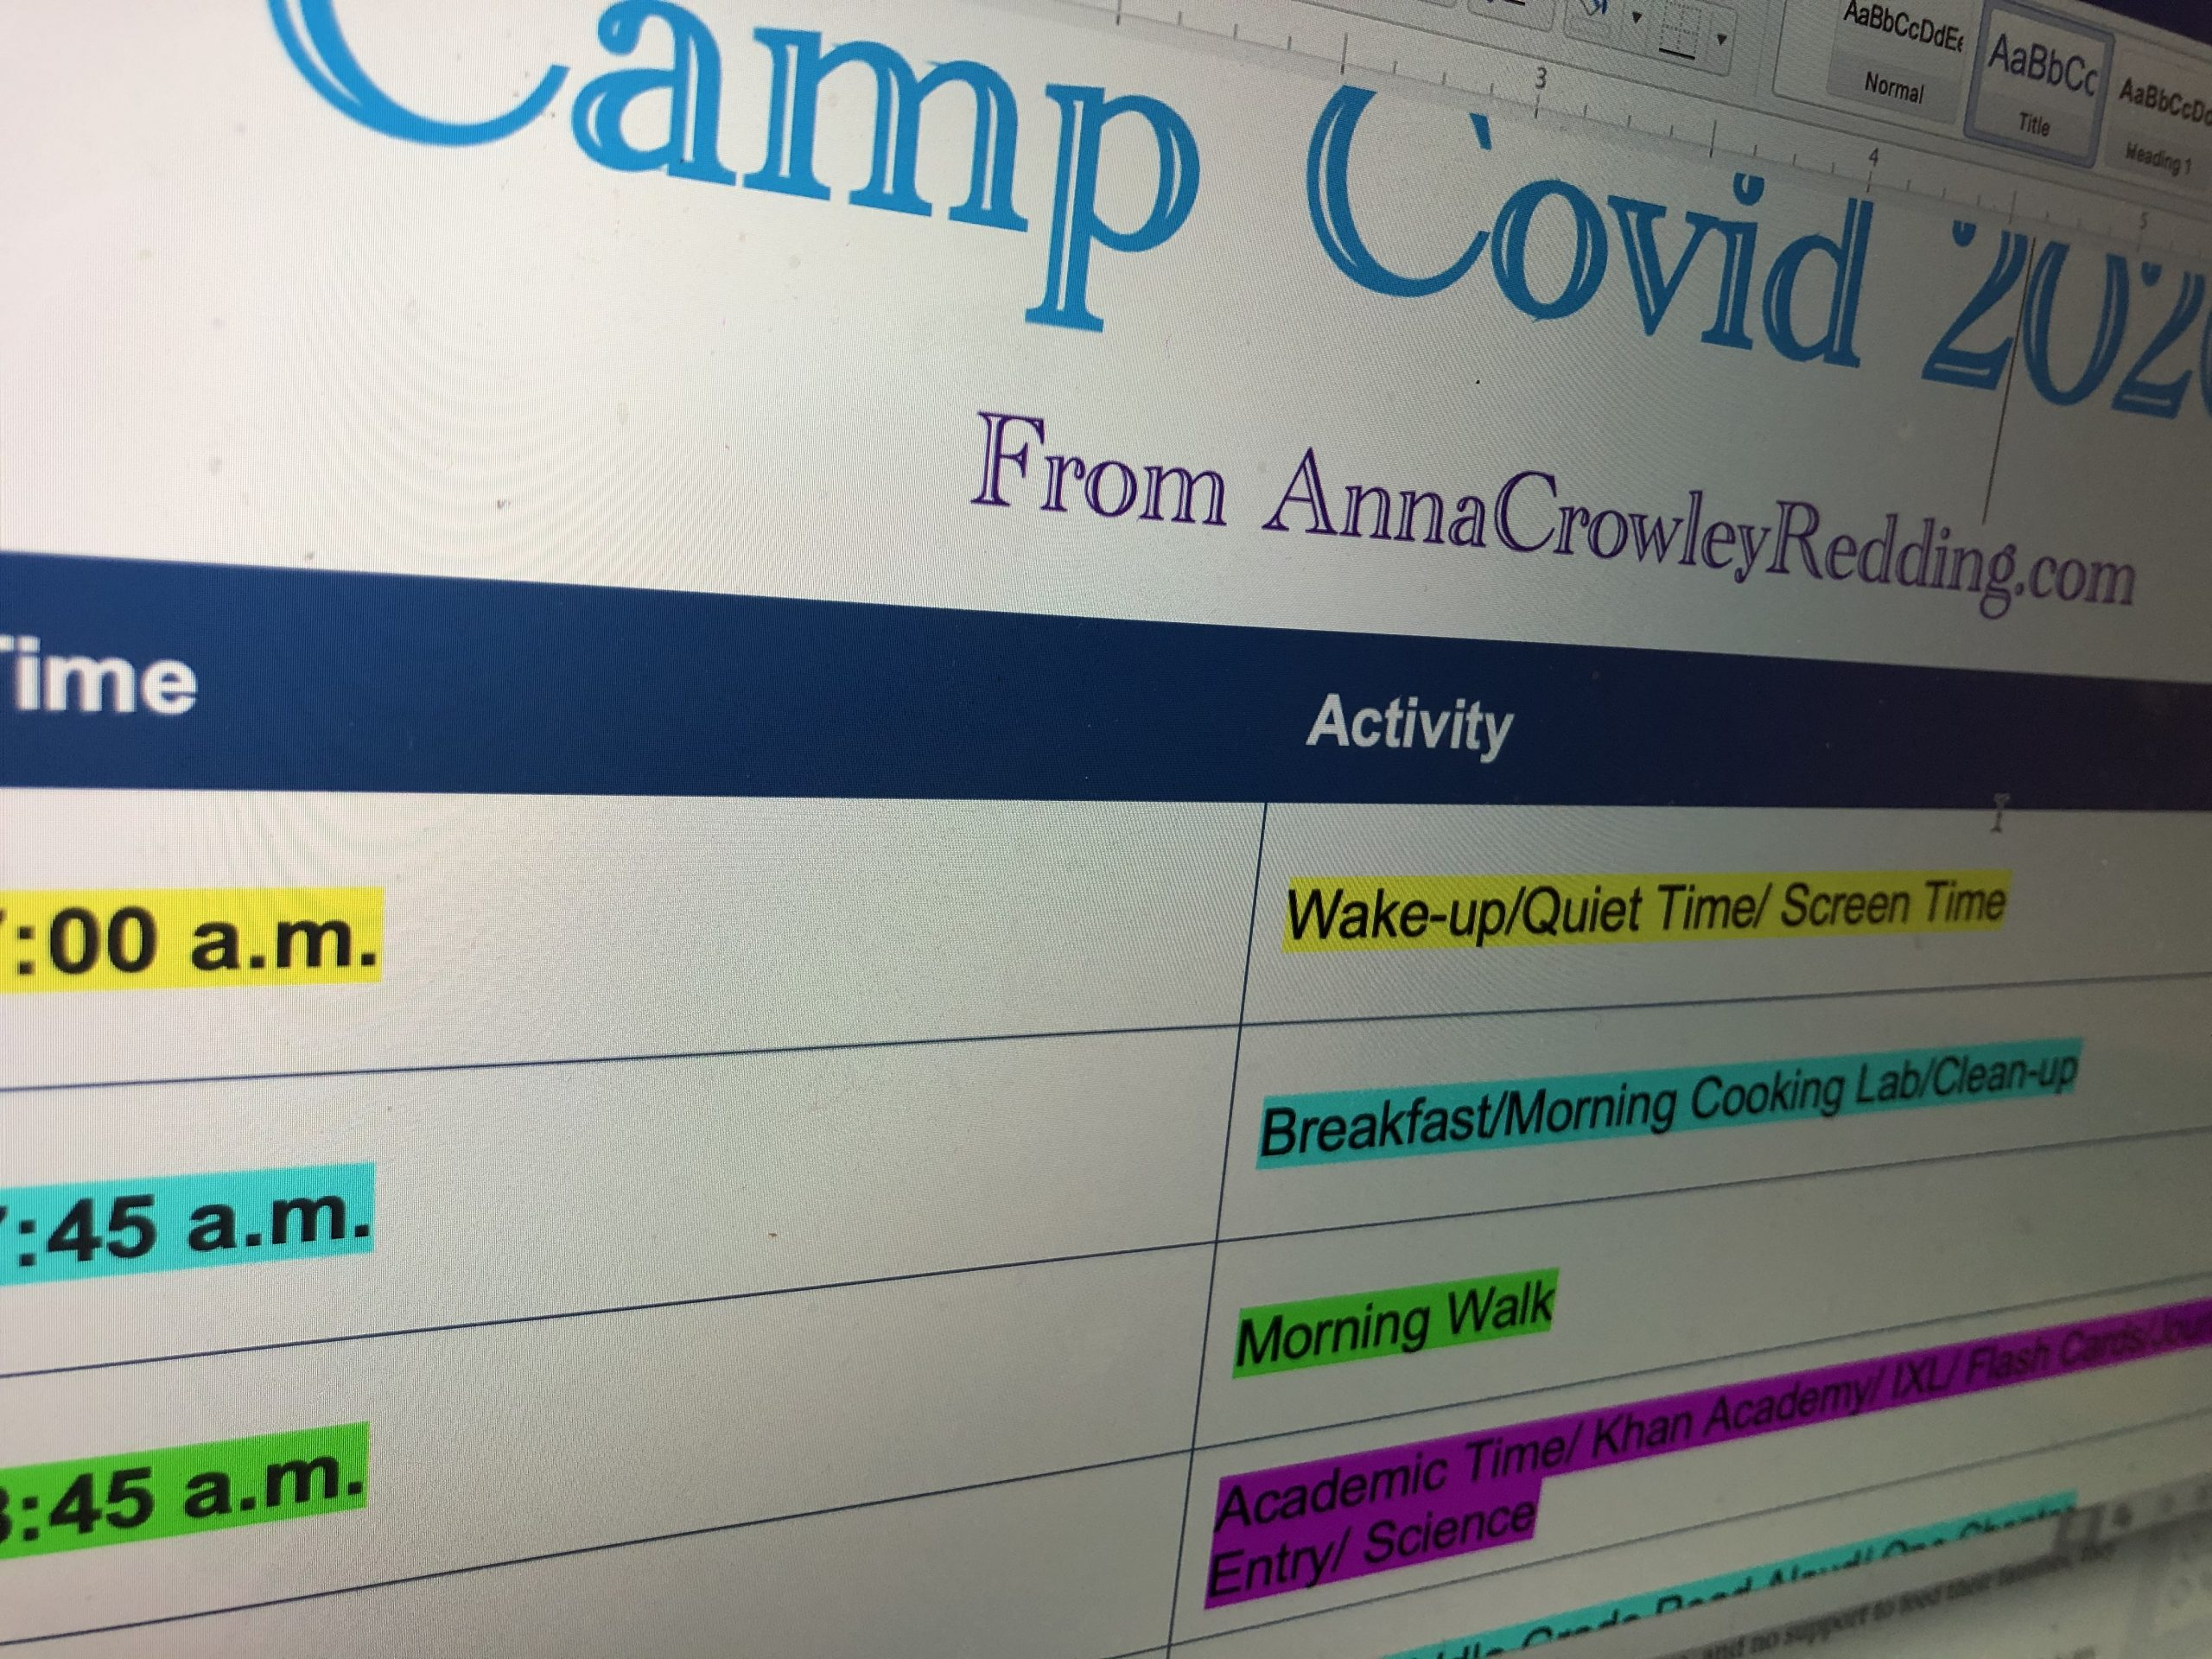 Camp Covid Starts Now